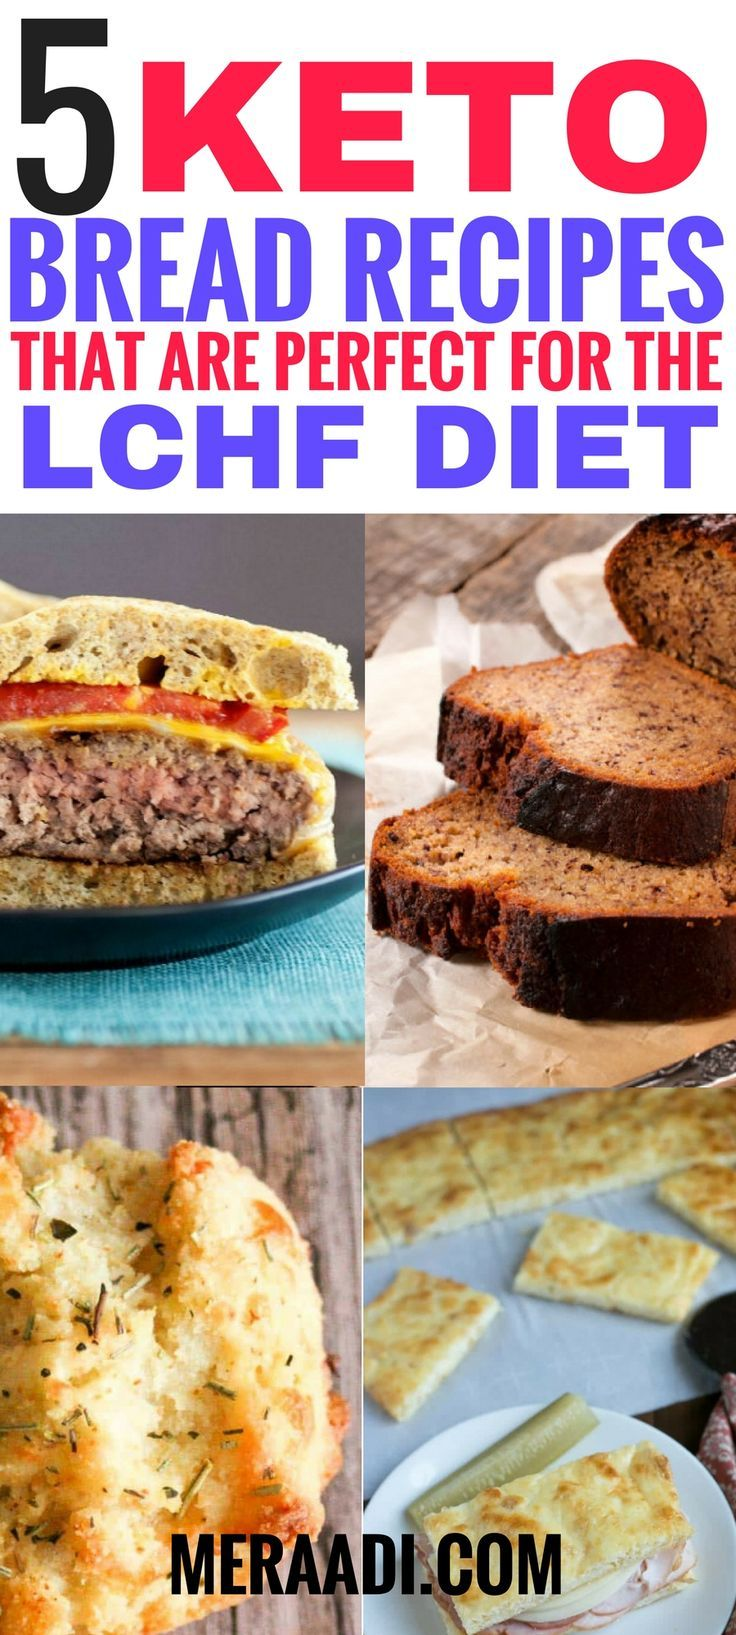 Keto Bread Recipes You Must Try If You Re On The Keto Diet These